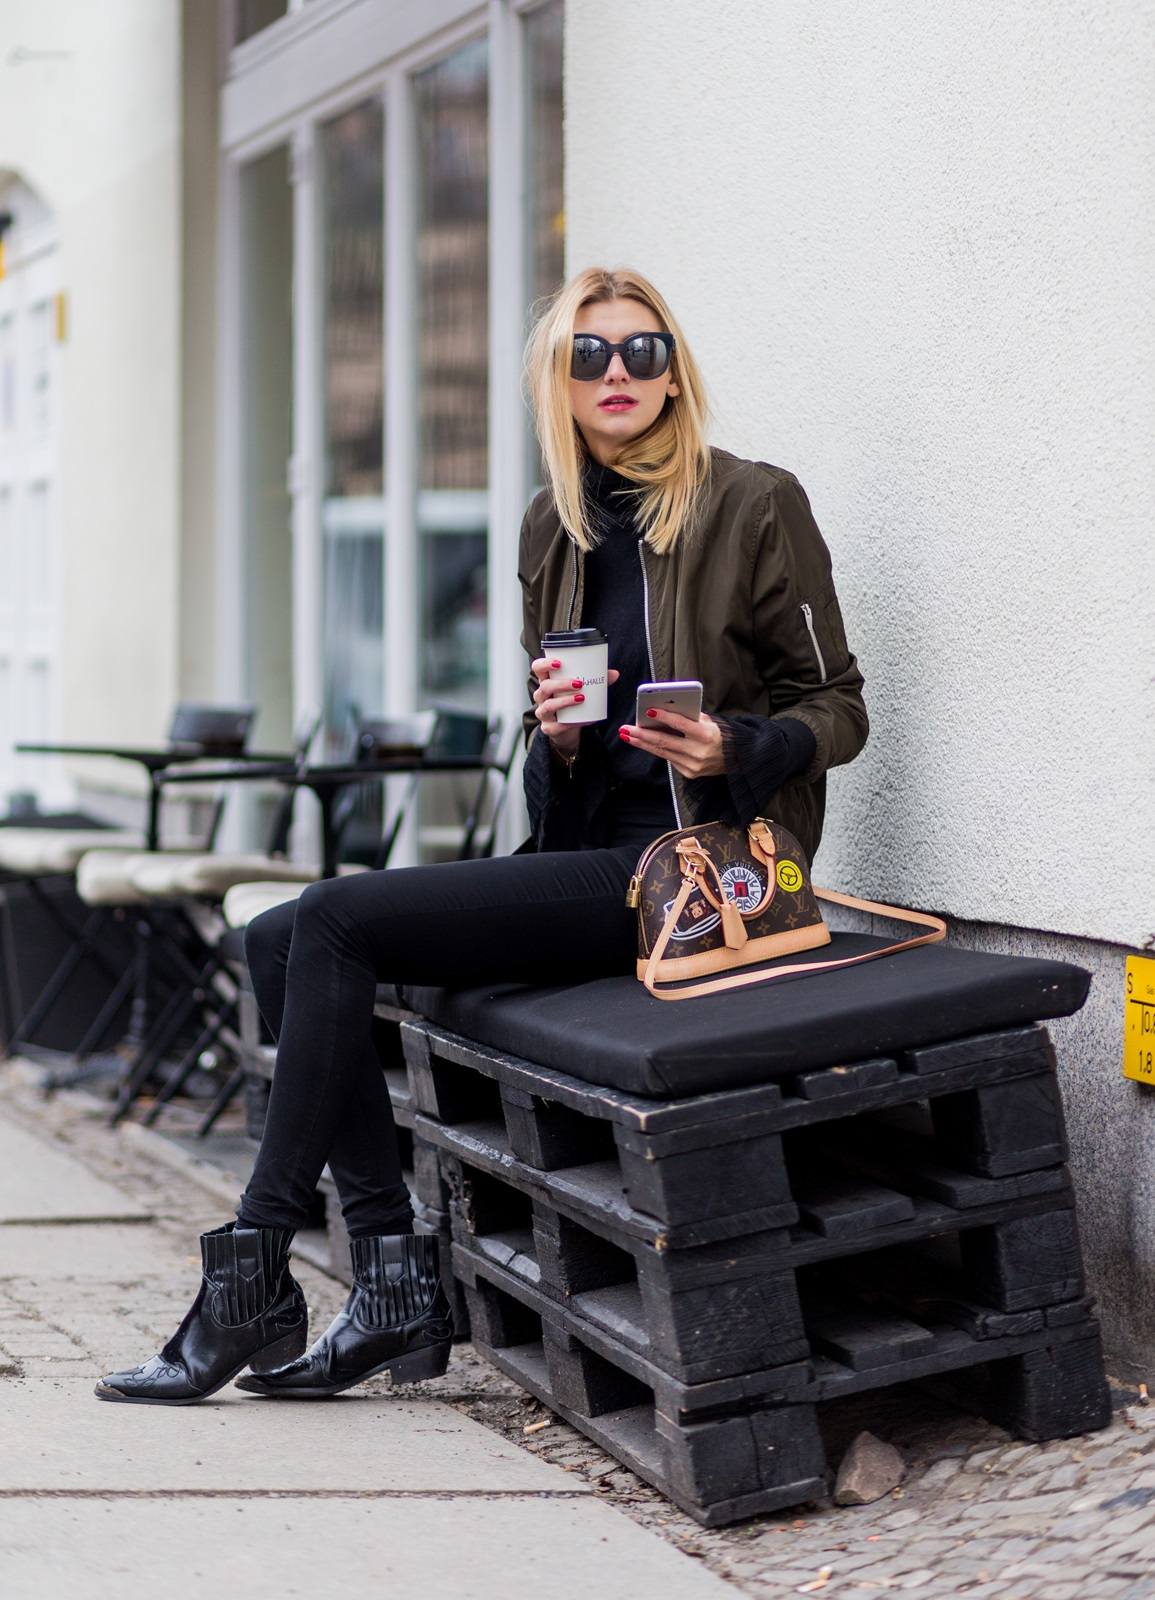 BERLIN, GERMANY - JANUARY 19: Kimyana Hachmann wearing a top and bomber jacket Zara, H&M pants, Mango ankle boots, Louis Vuitton bag, Chanel sunglasses during the Mercedes-Benz Fashion Week Berlin A/W 2017 at Kaufhaus Jandorf on January 19, 2017 in Berlin, Germany. (Photo by Christian Vierig/Getty Images) *** Local Caption *** Kimyana Hachmann